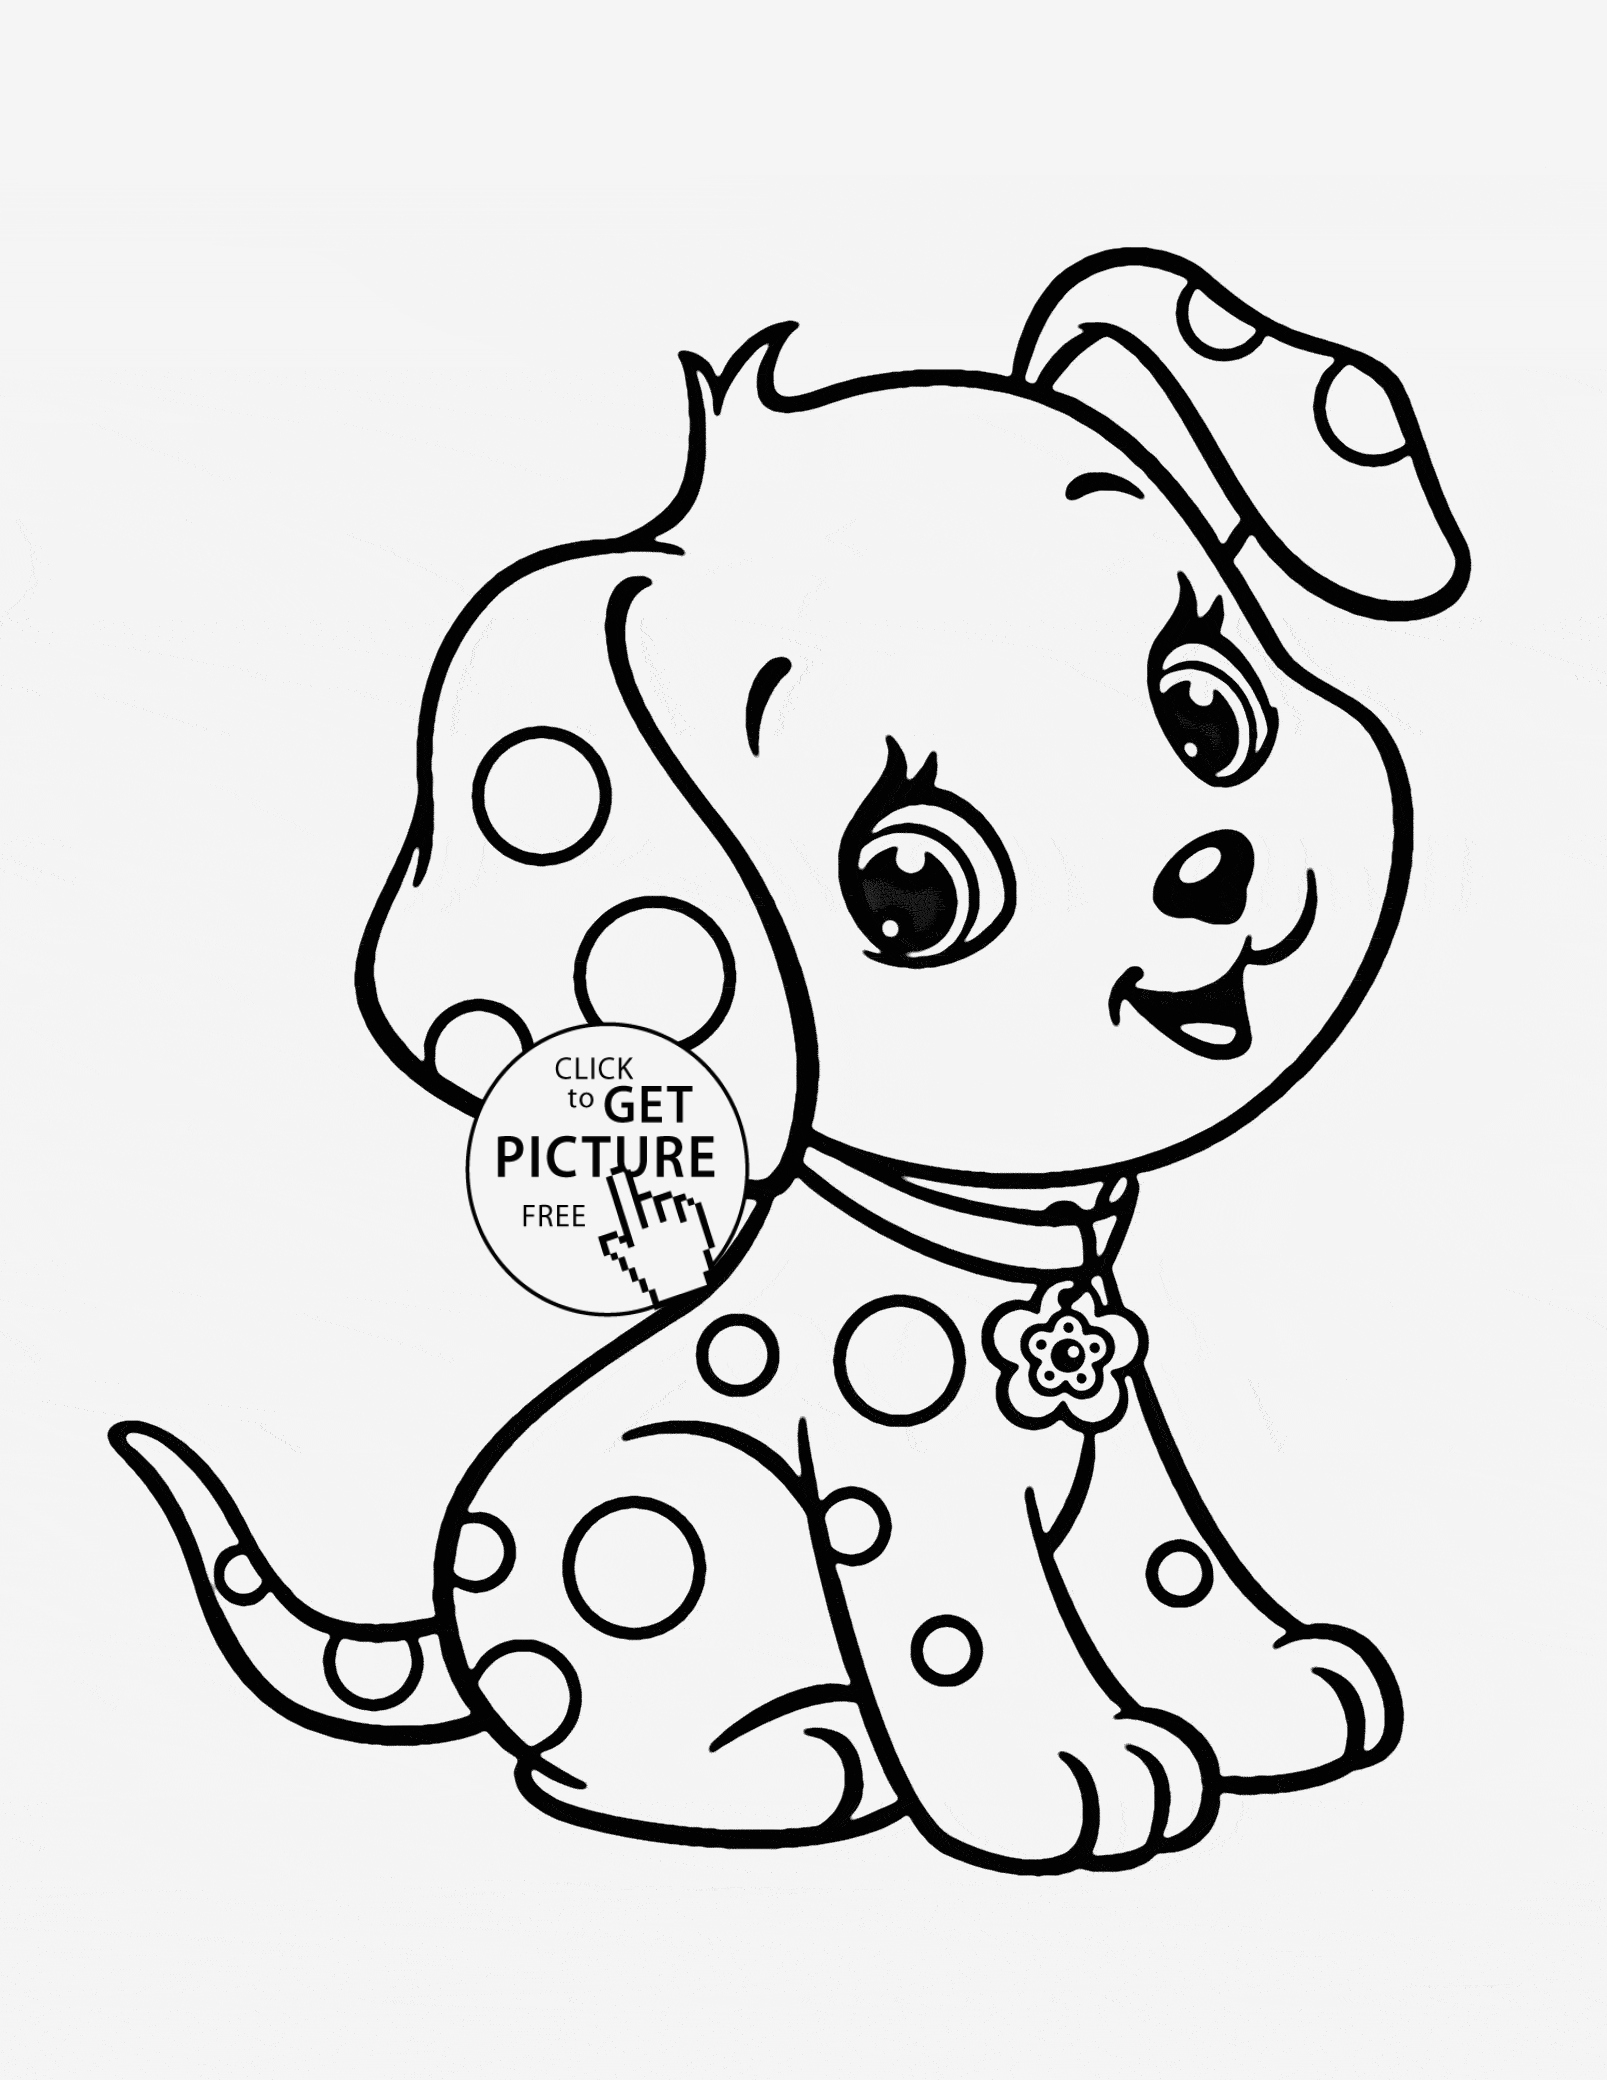 free dog coloring pages Download-Free Animal Coloring Pages Free Print Cool Coloring Page Unique Witch Coloring Pages New Crayola Pages 0d 2-f